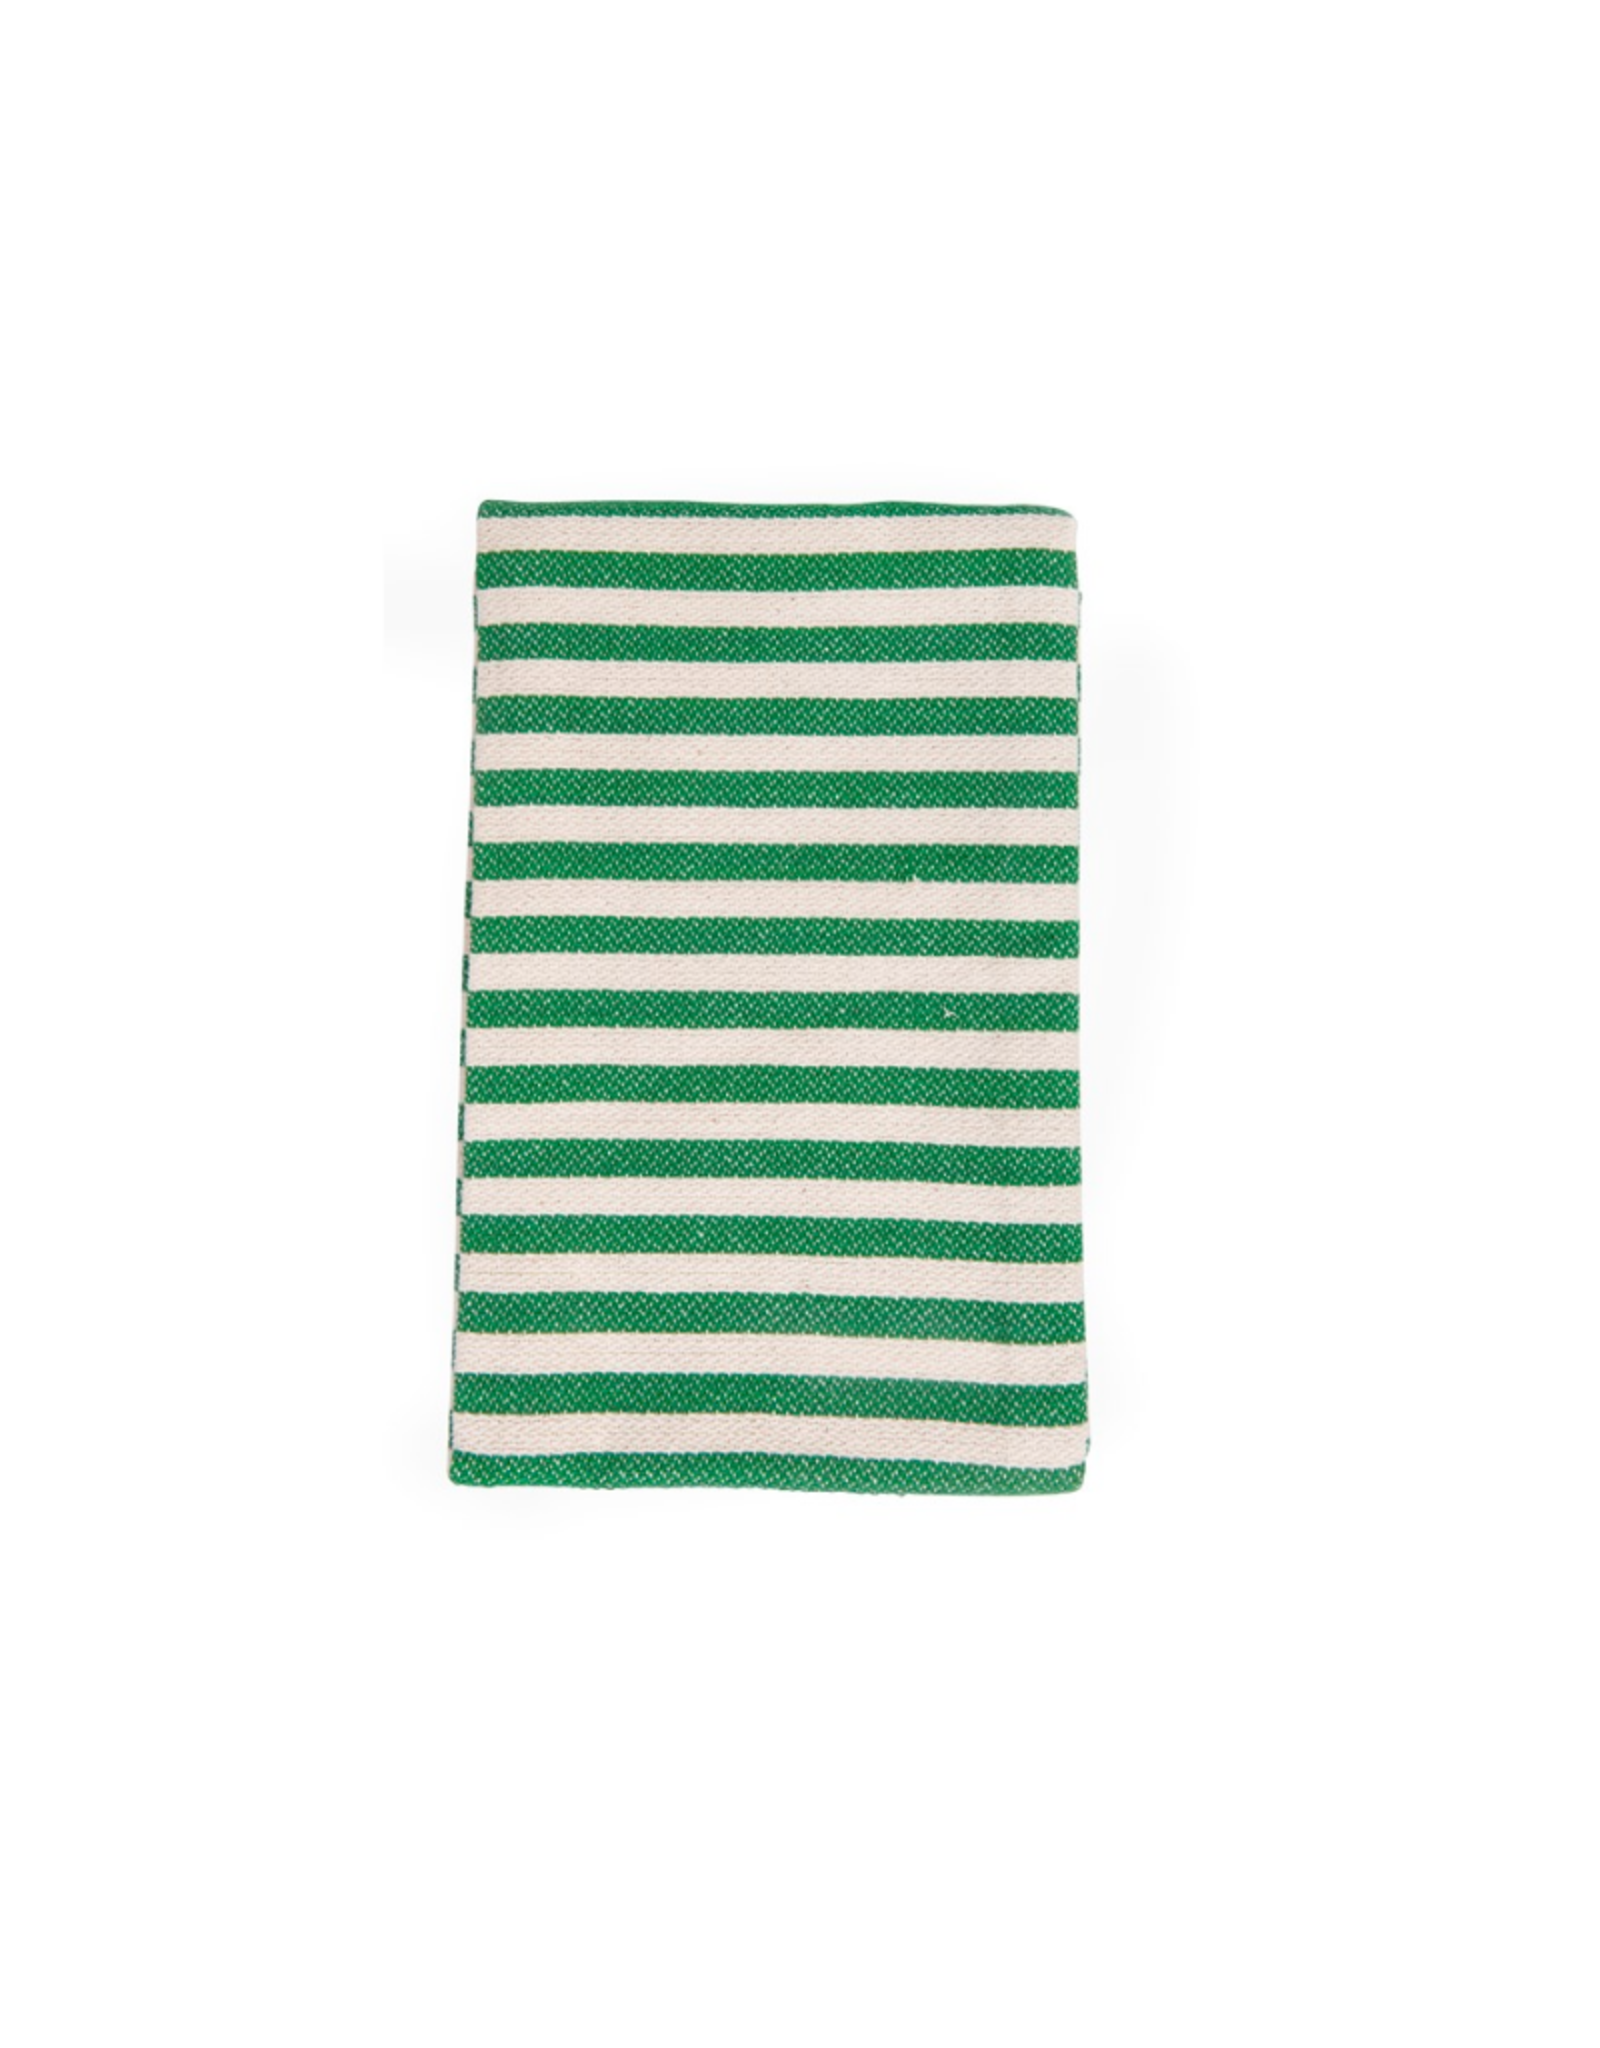 """TEA TOWELS-COTTON PATTERNED, SET OF 3 STYLES, 28""""X18"""""""